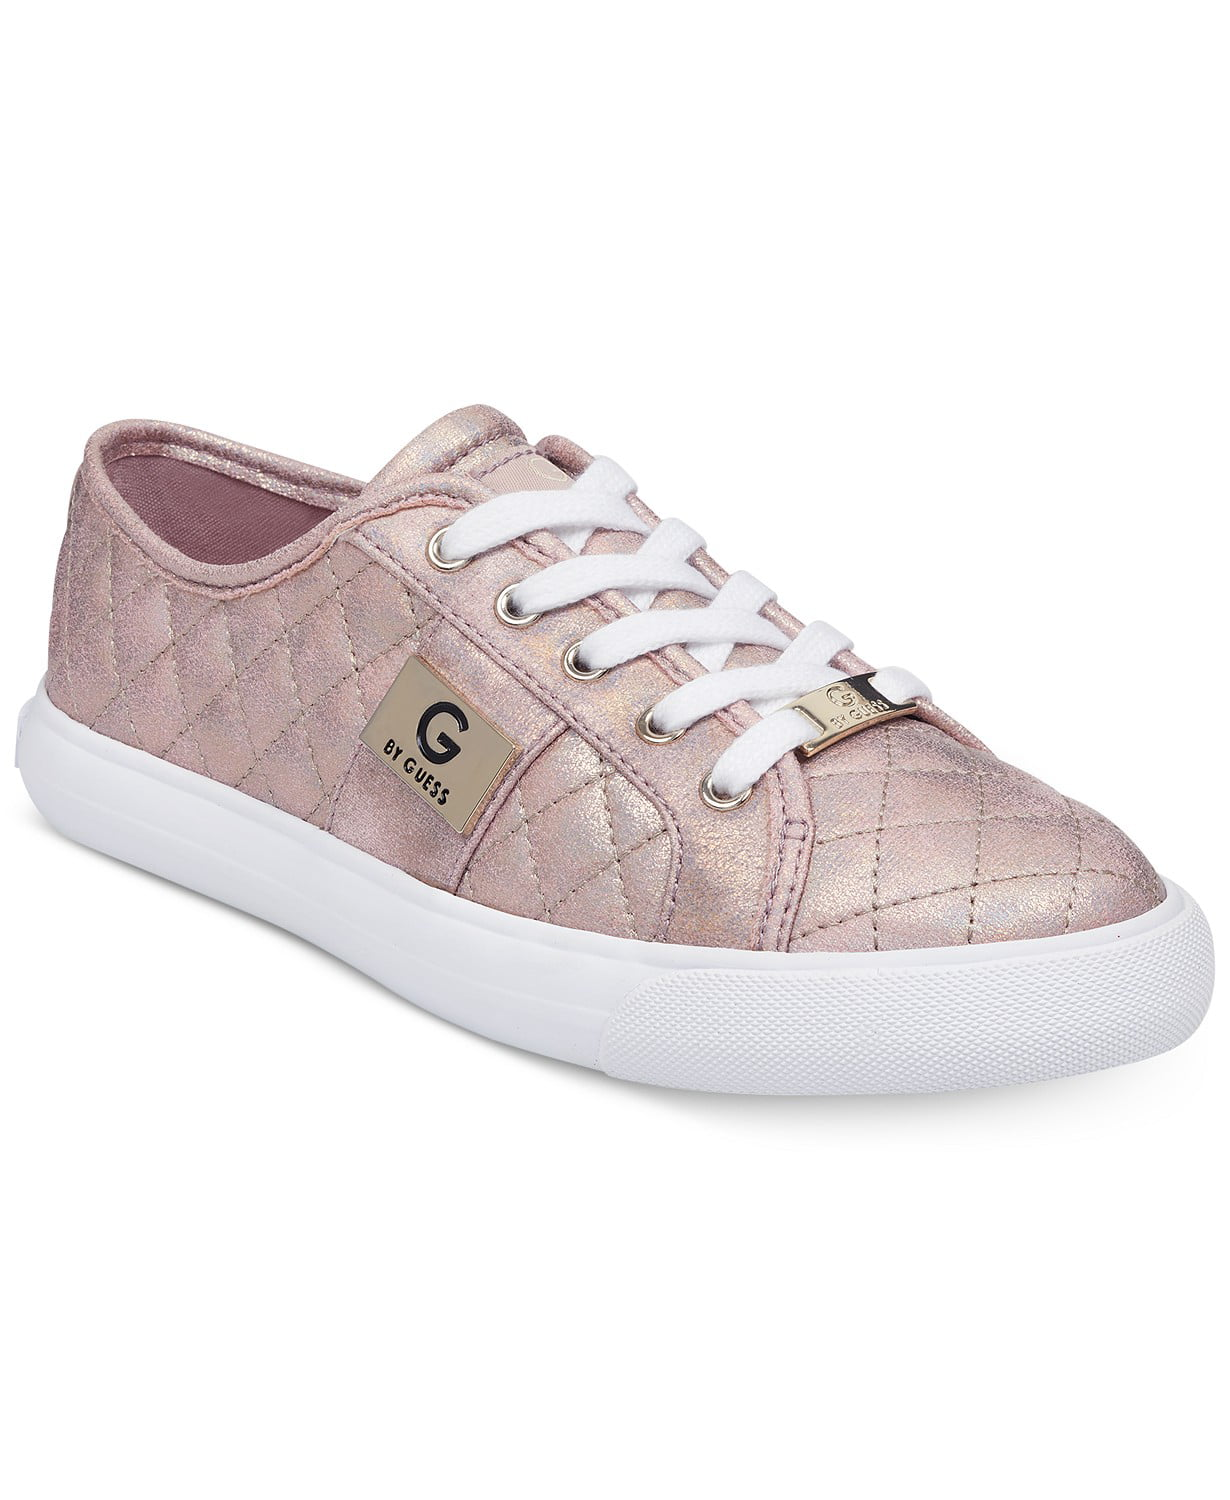 G by Guess Women's Backer2 Lace Up